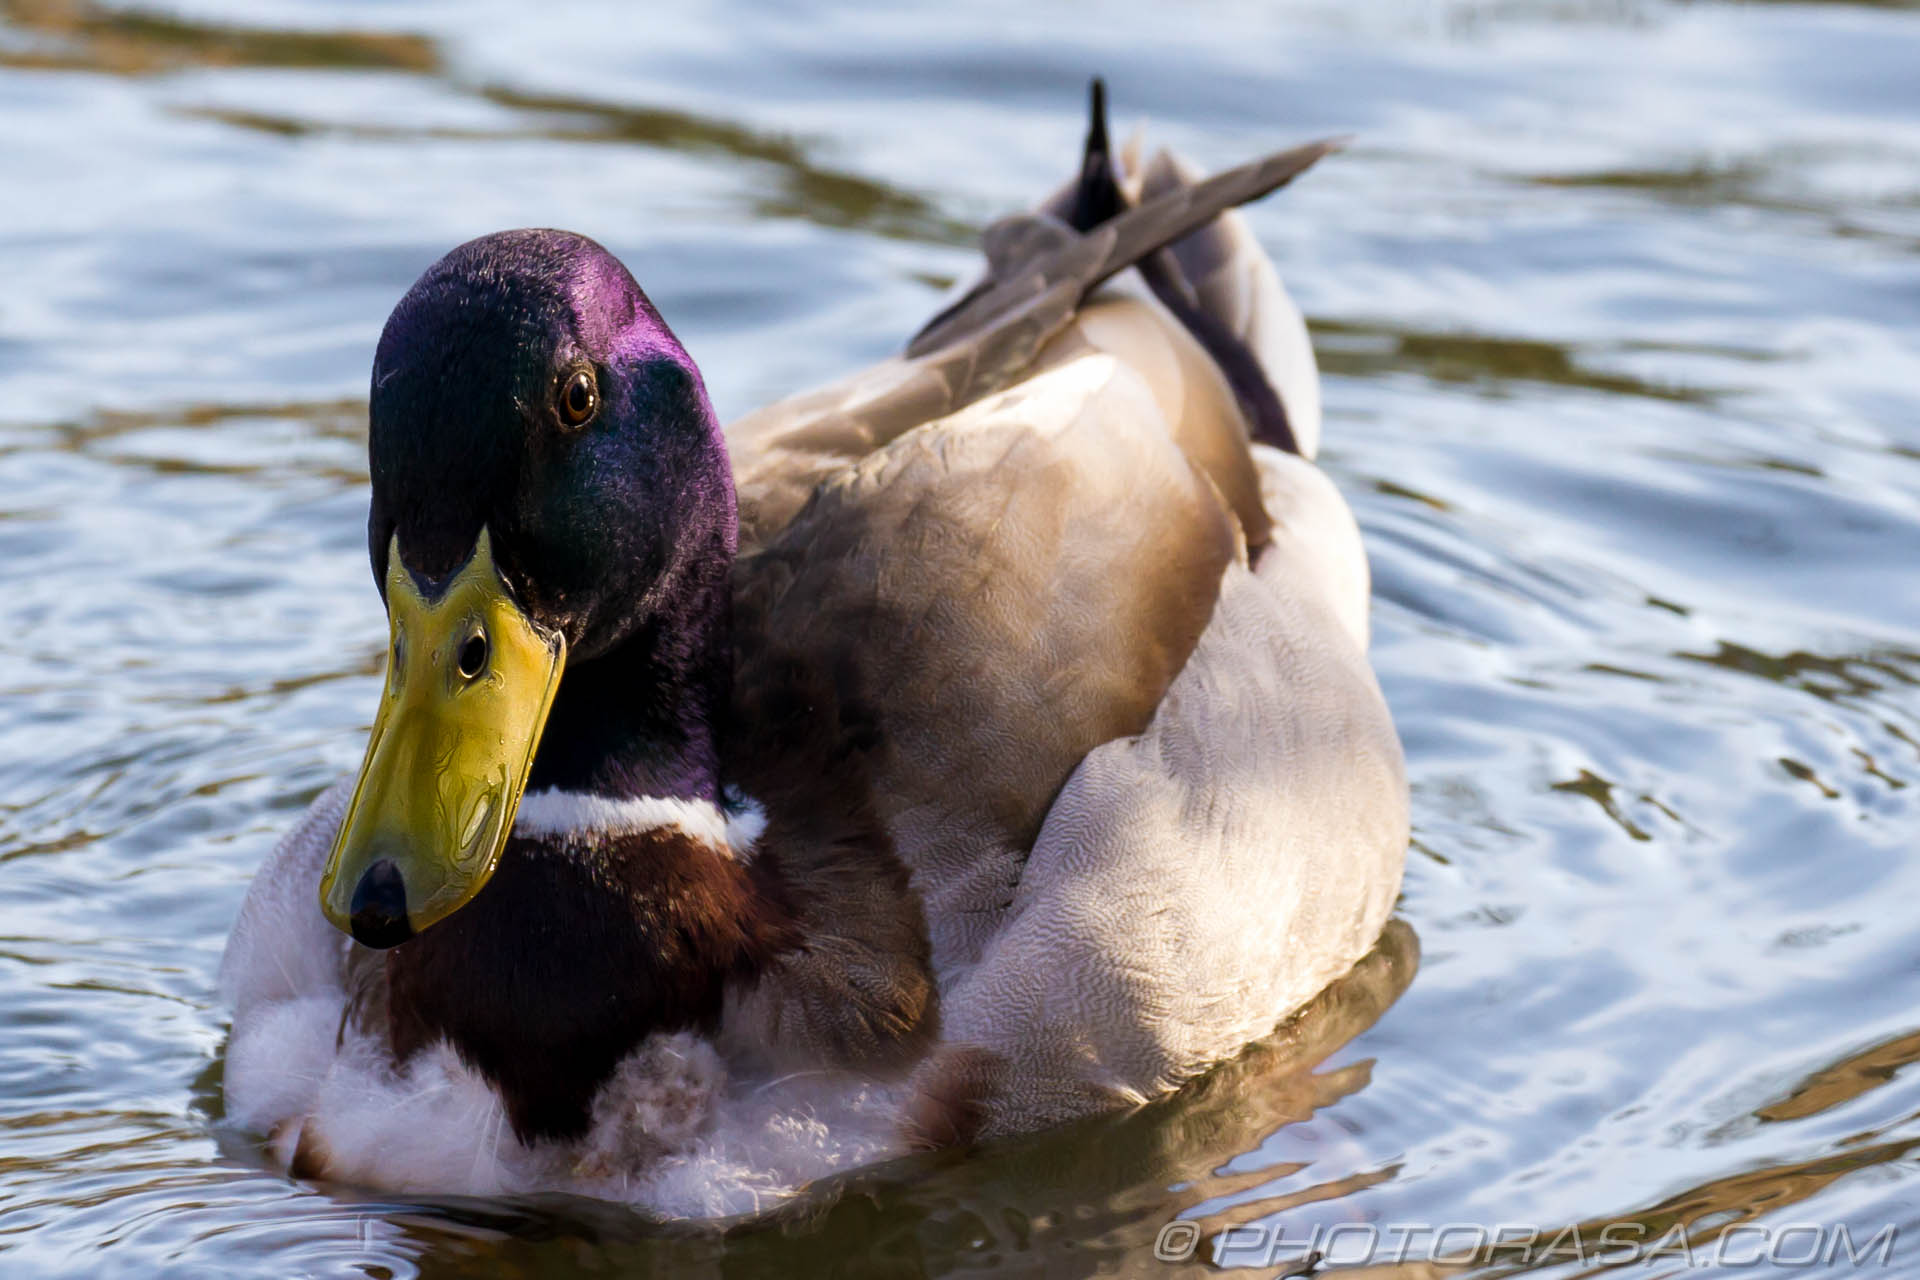 http://photorasa.com/mallard-ducks/purple-mallard-head/